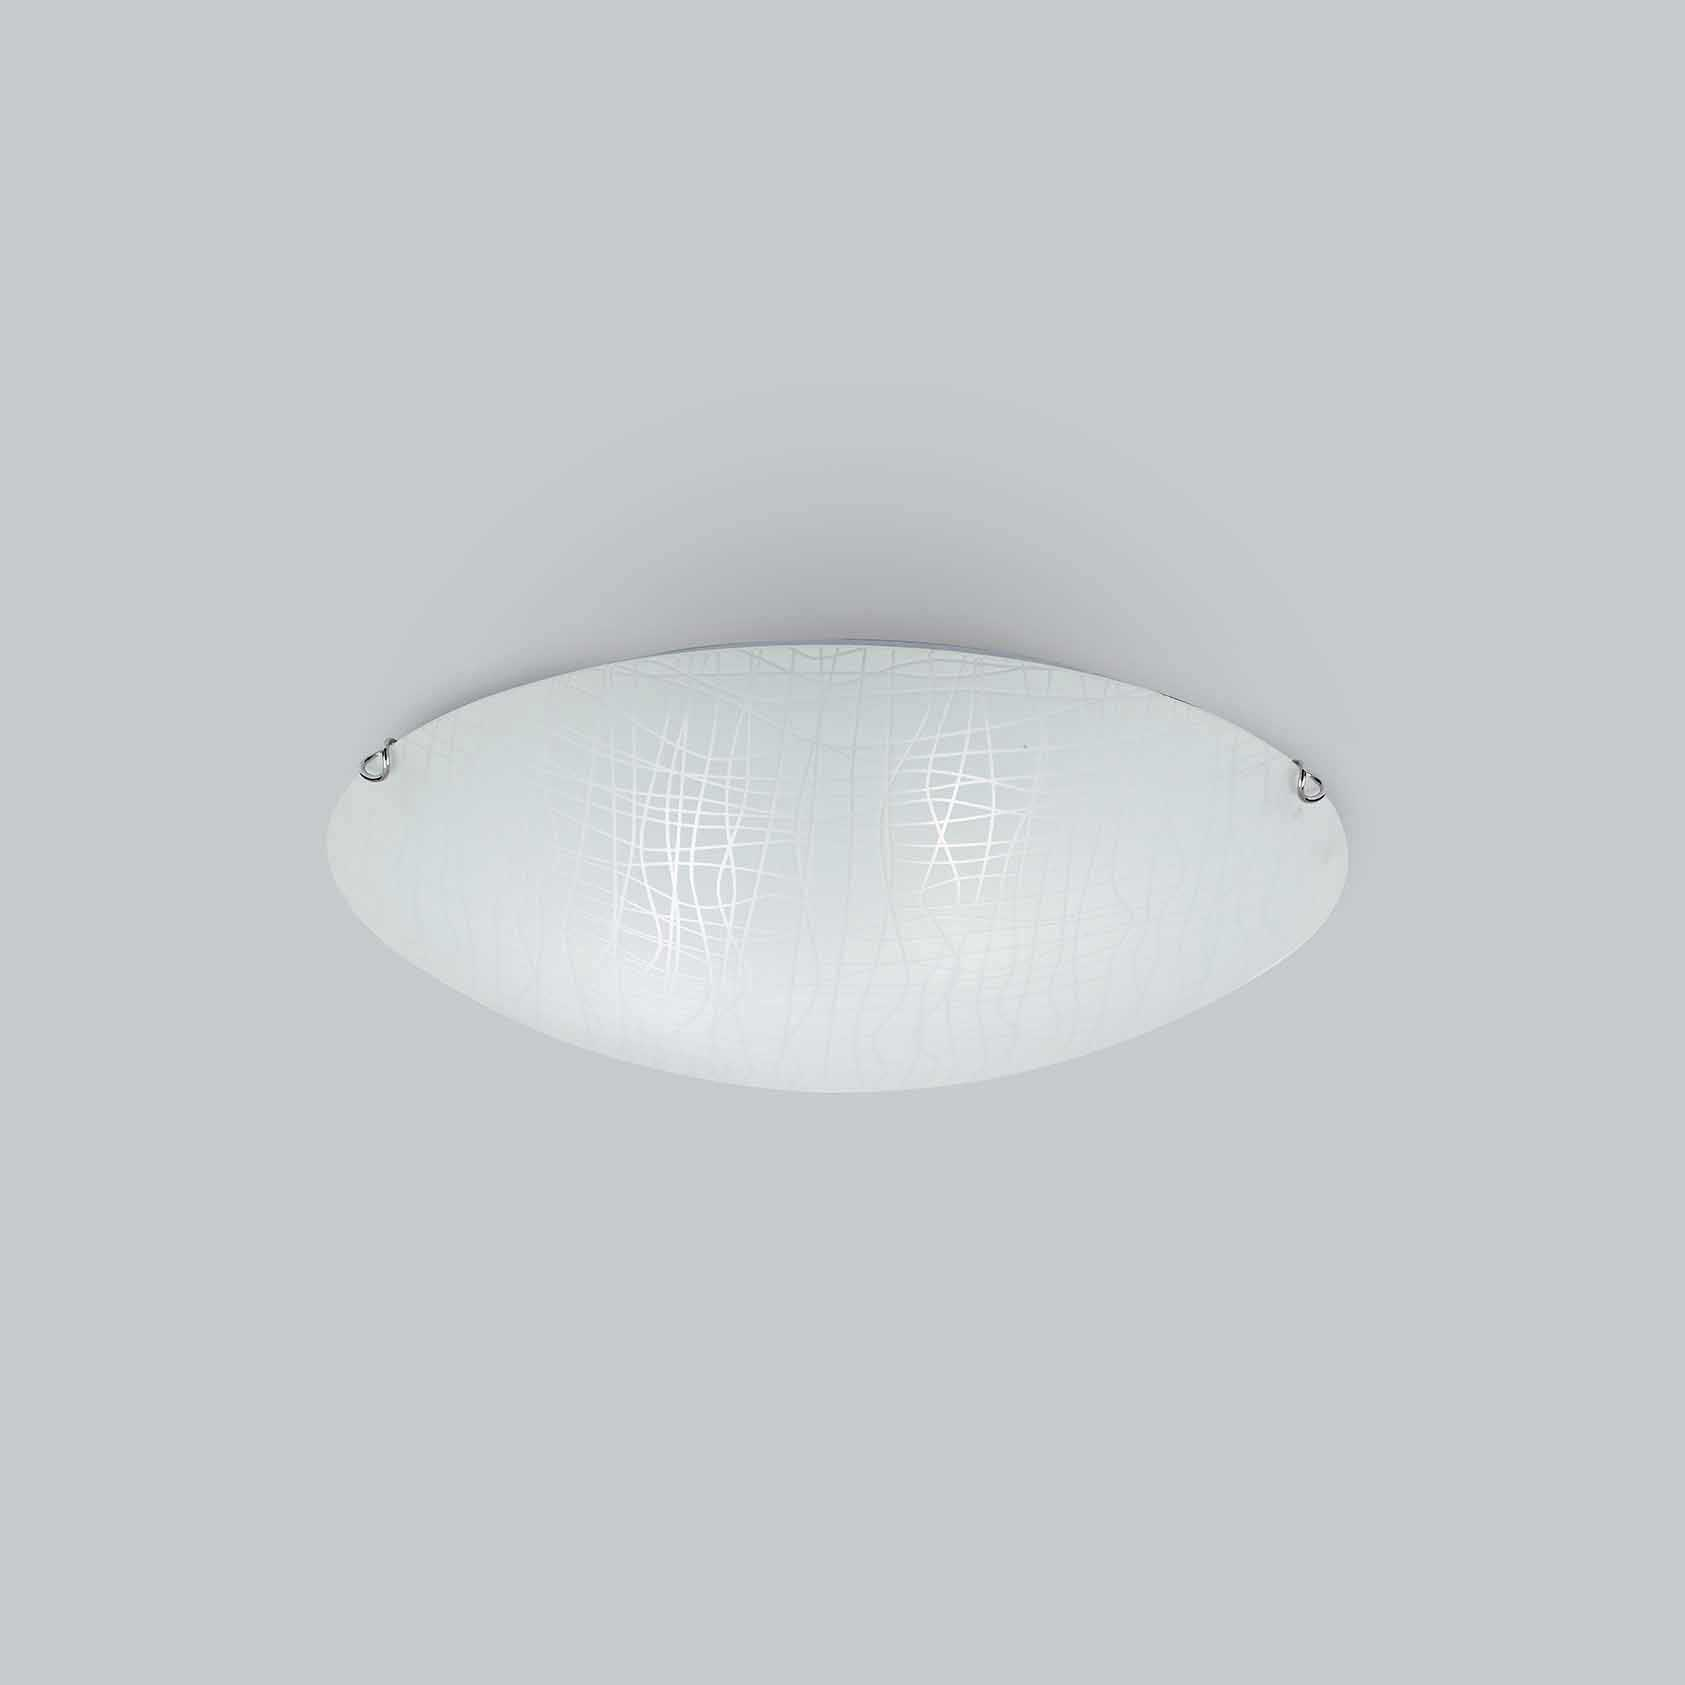 GD 0056 / PL30 Ceiling Lamp